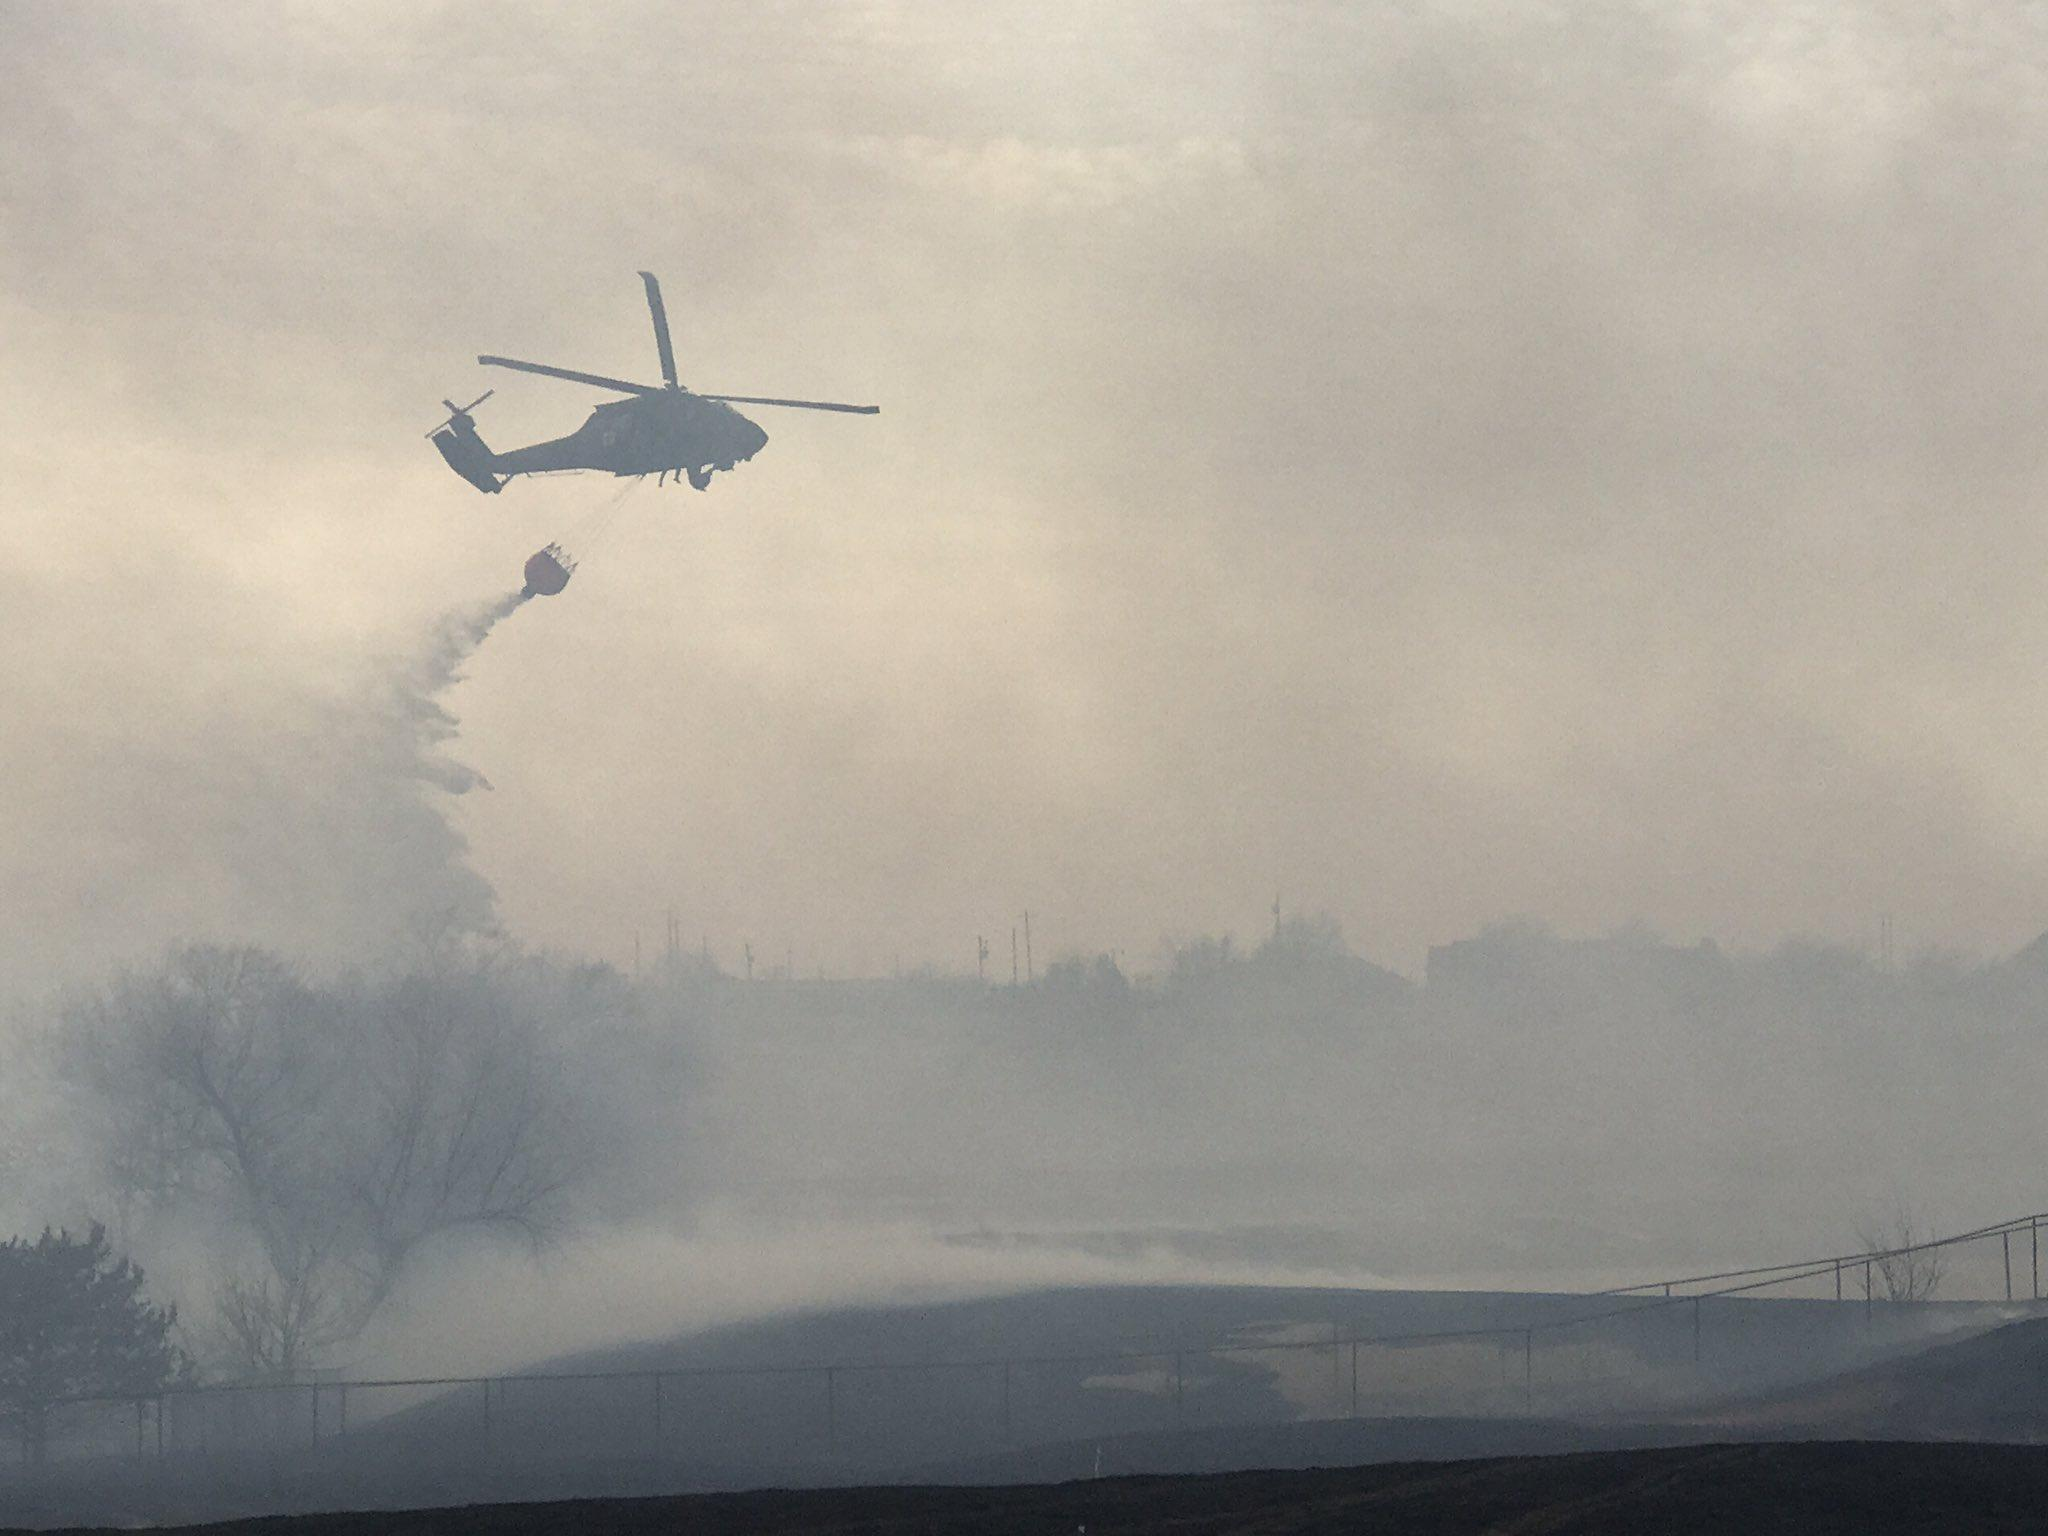 Homes evacuated amid Okla. City grass fire